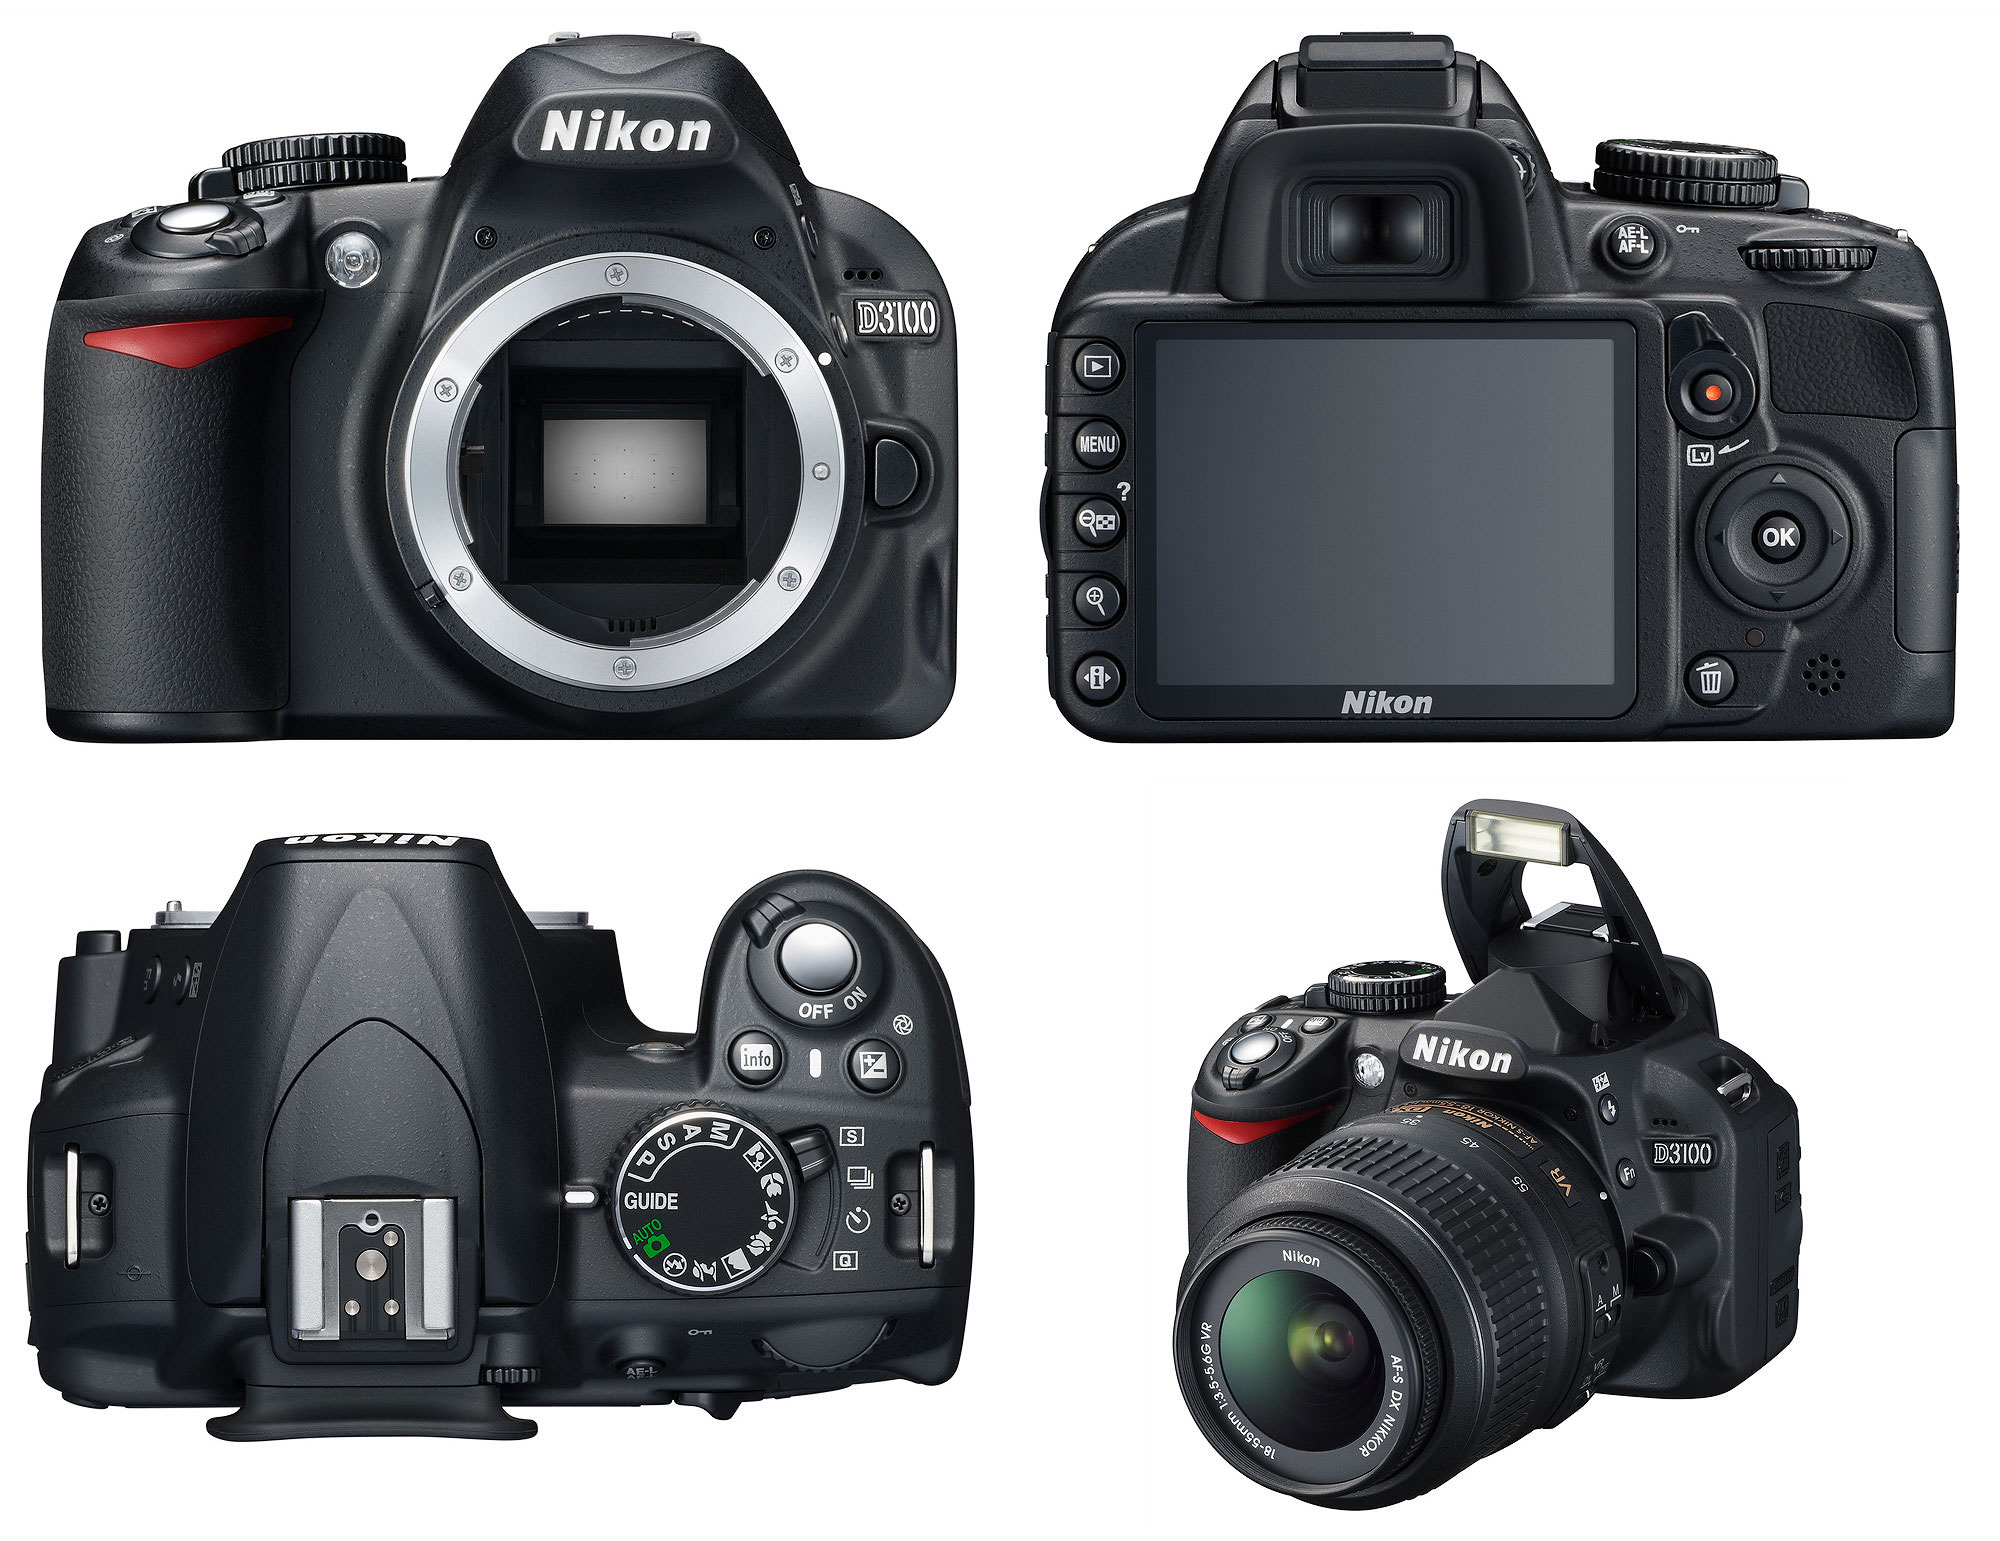 The 3 Best Entry Level DSLR Cameras - Use of Technology